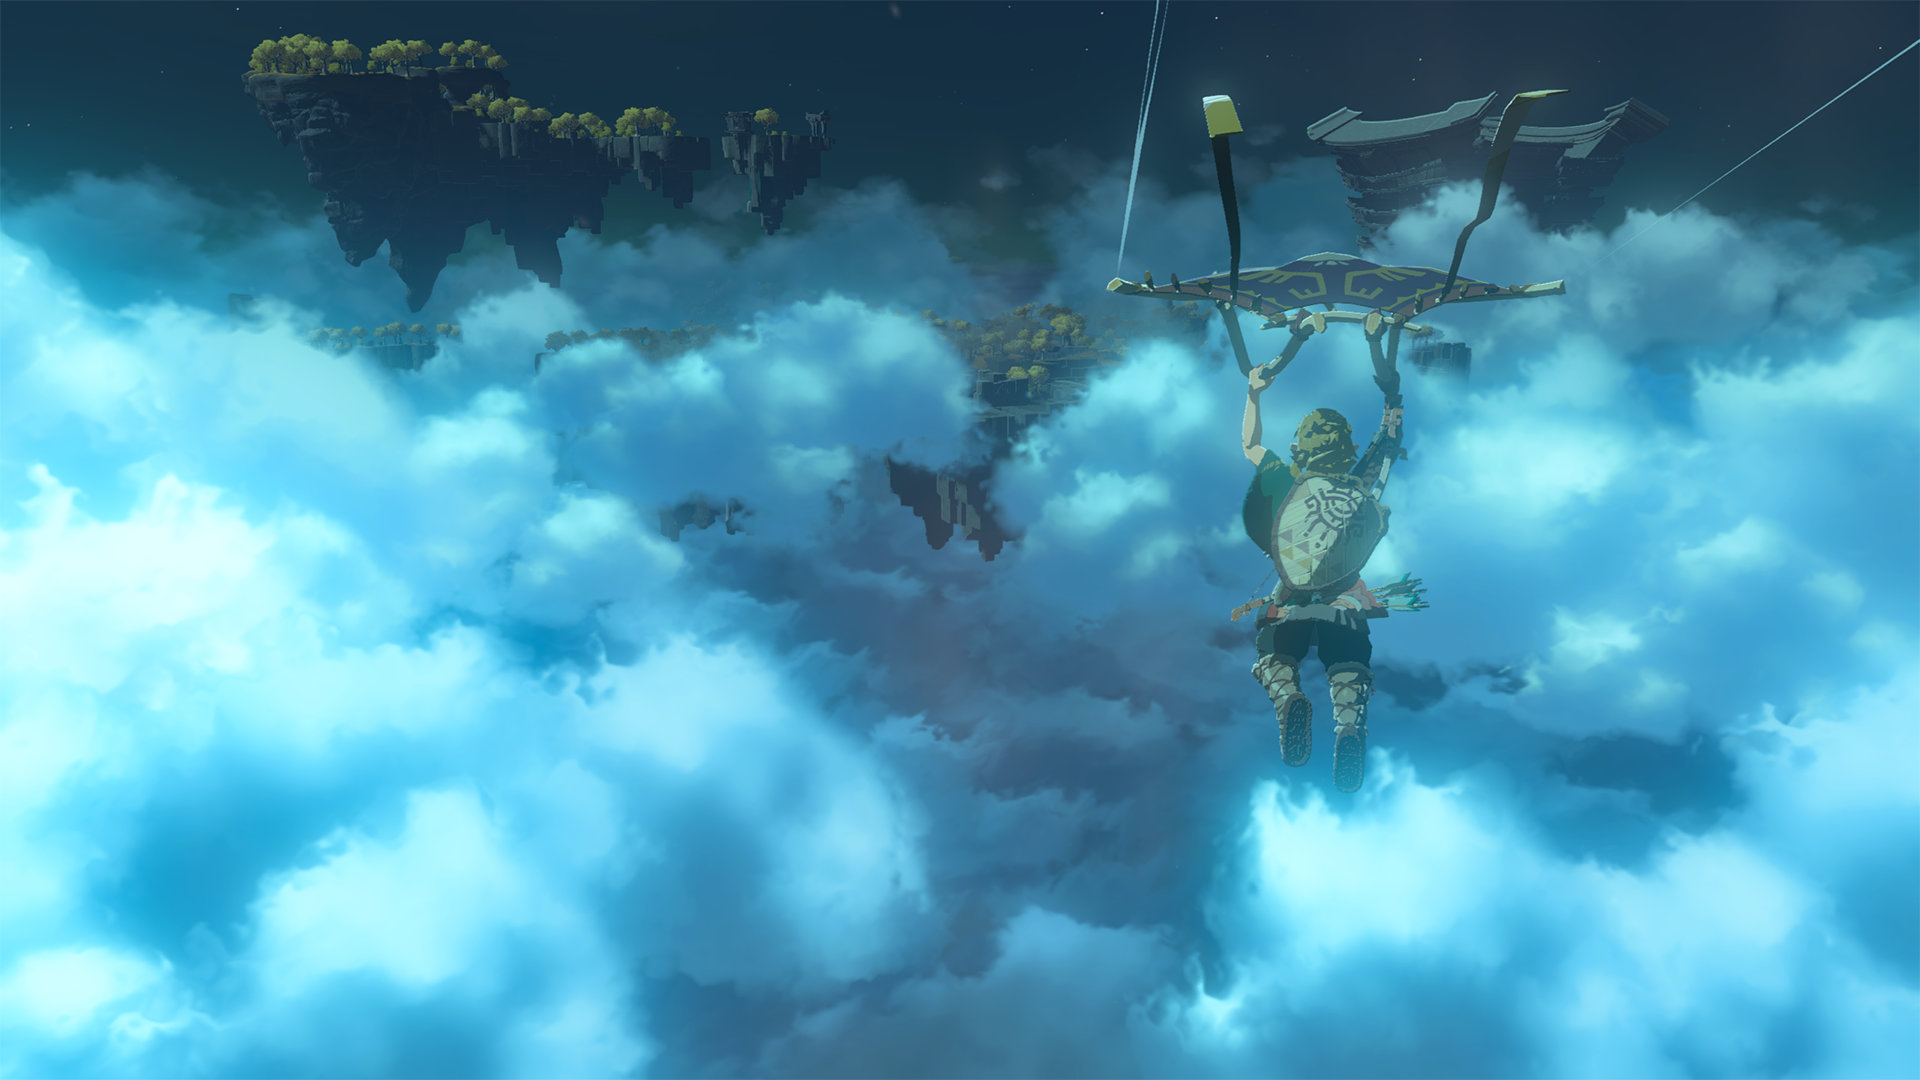 The Legend of Zelda: Breath of the Wild 2 Screenshot of Link paragliding in a vast open cloudy sky with floating islands across the landscape.